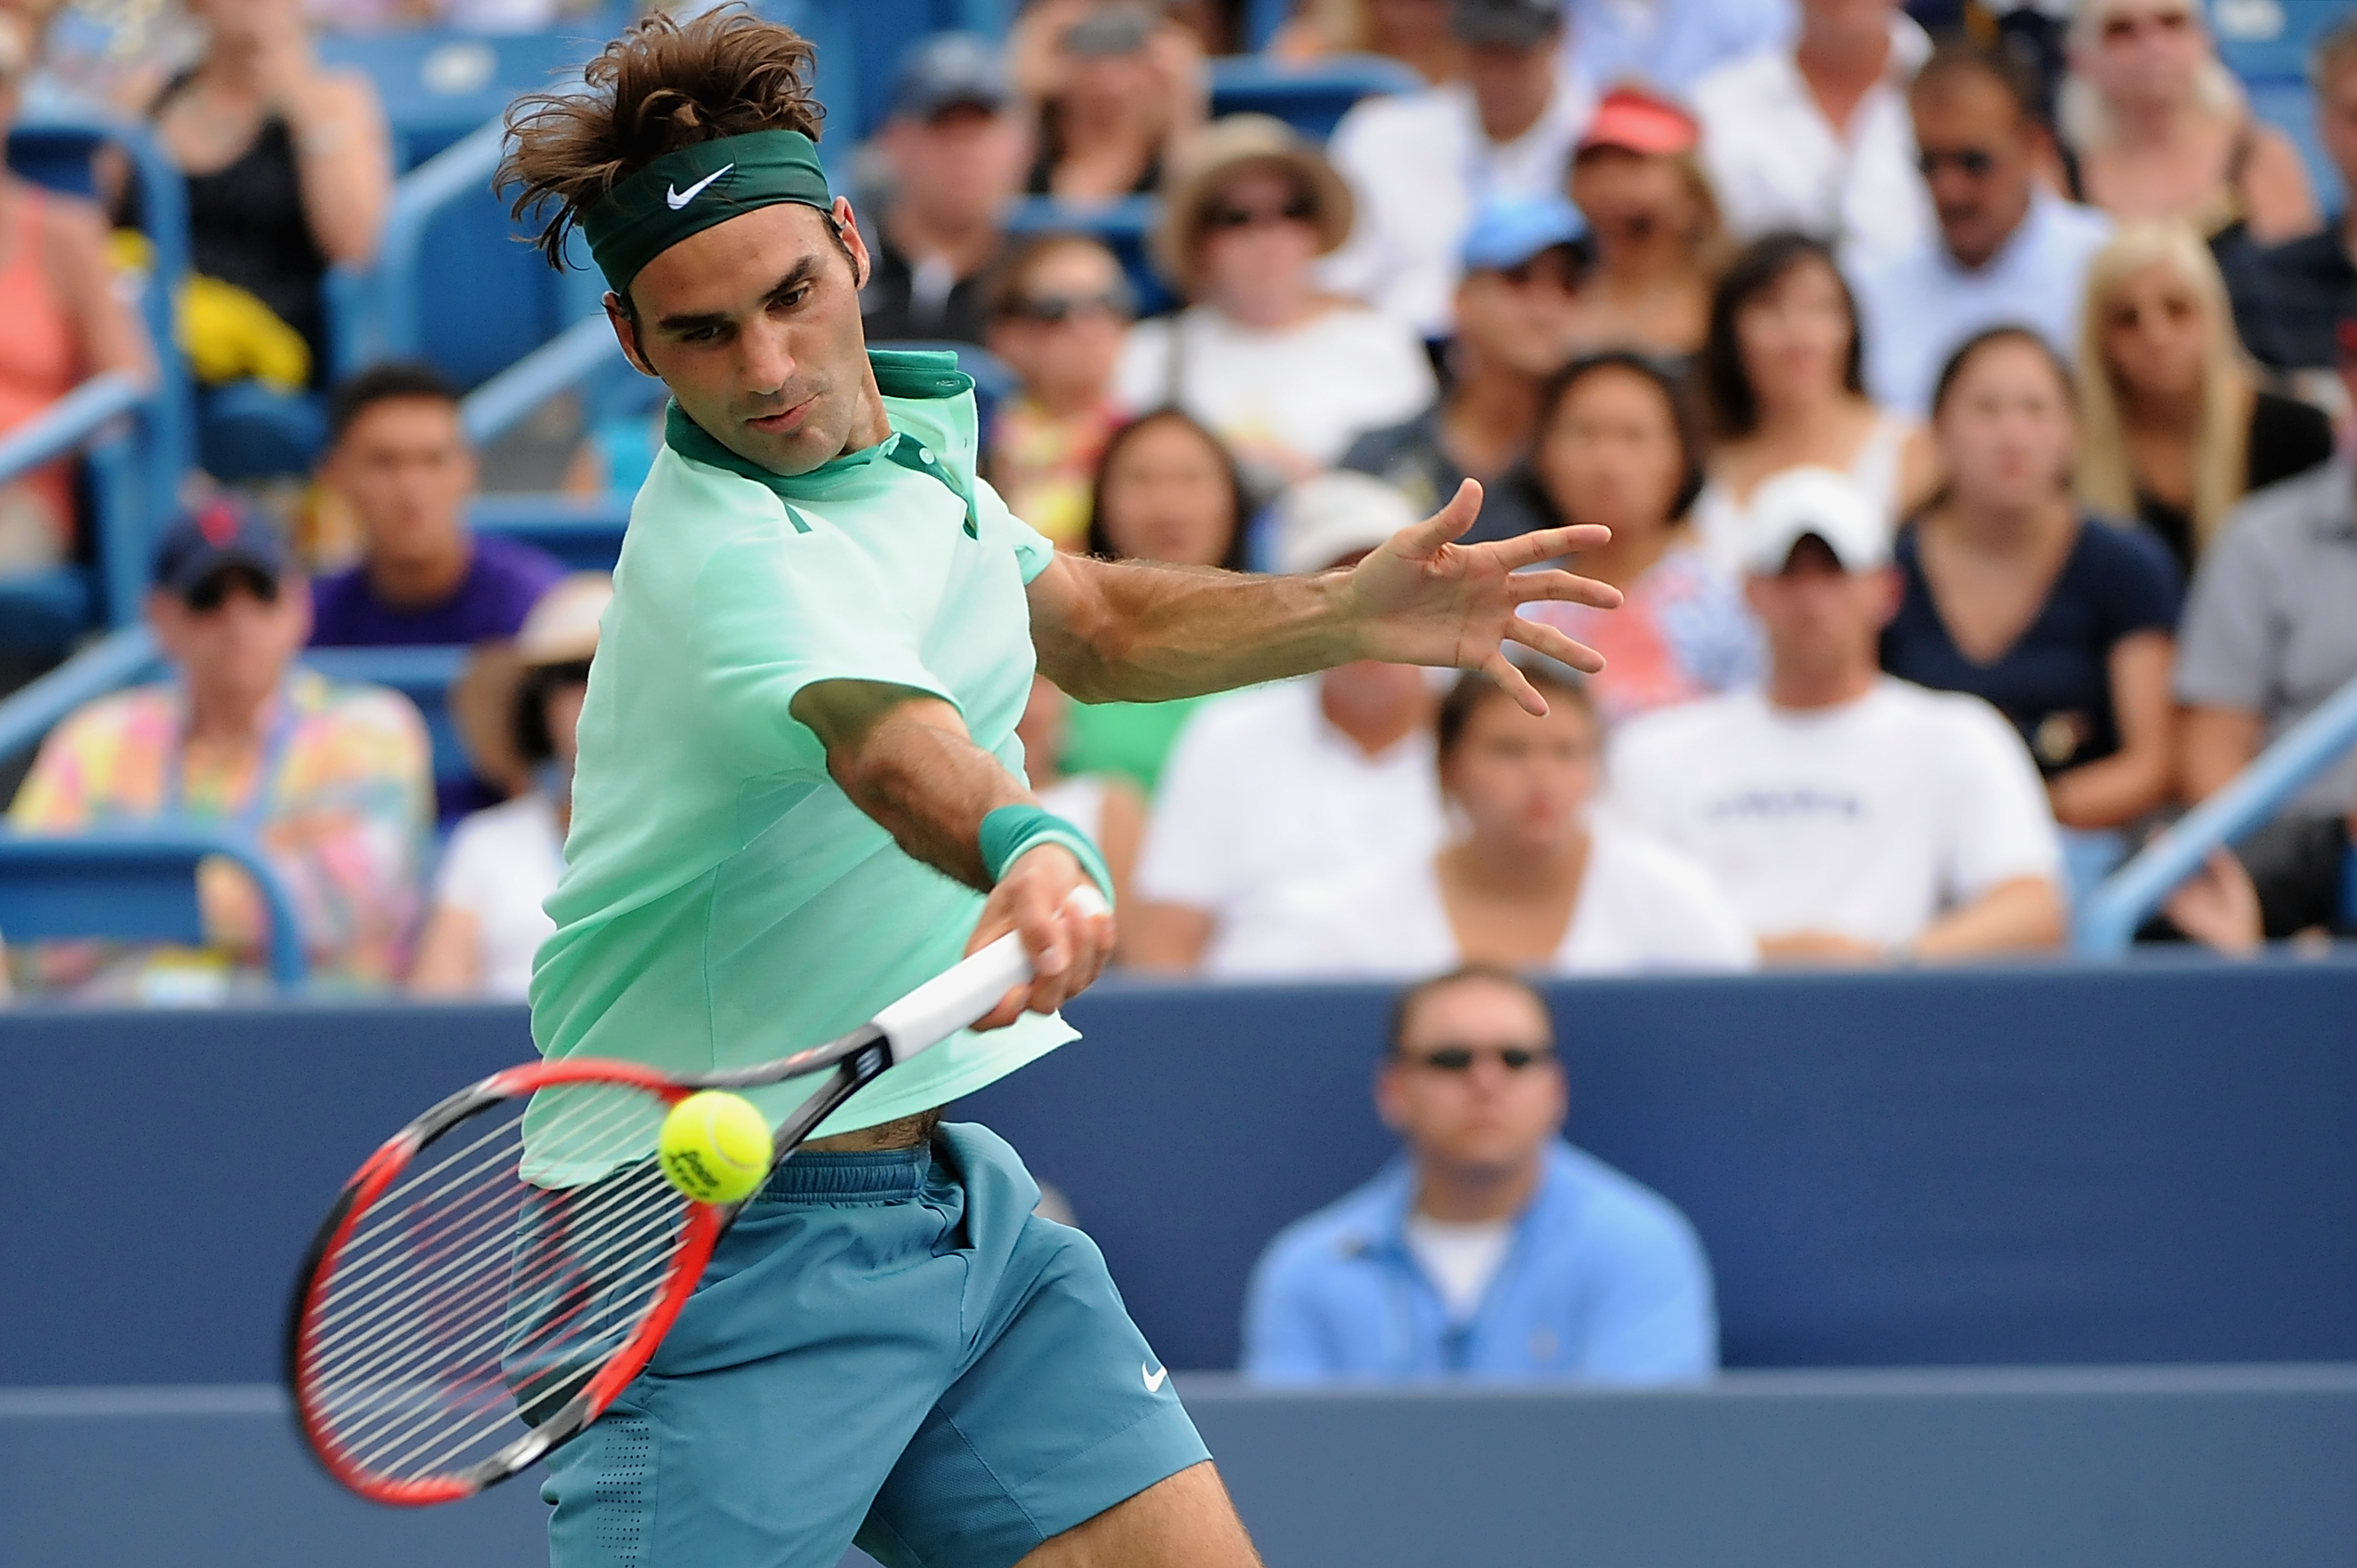 Roger Federer of Switzerland returns to David Ferrer of Spain during a final match on Day 9 of the Western & Southern Open at the Linder Family Tennis Center in Cincinnati on Aug. 17, 2014